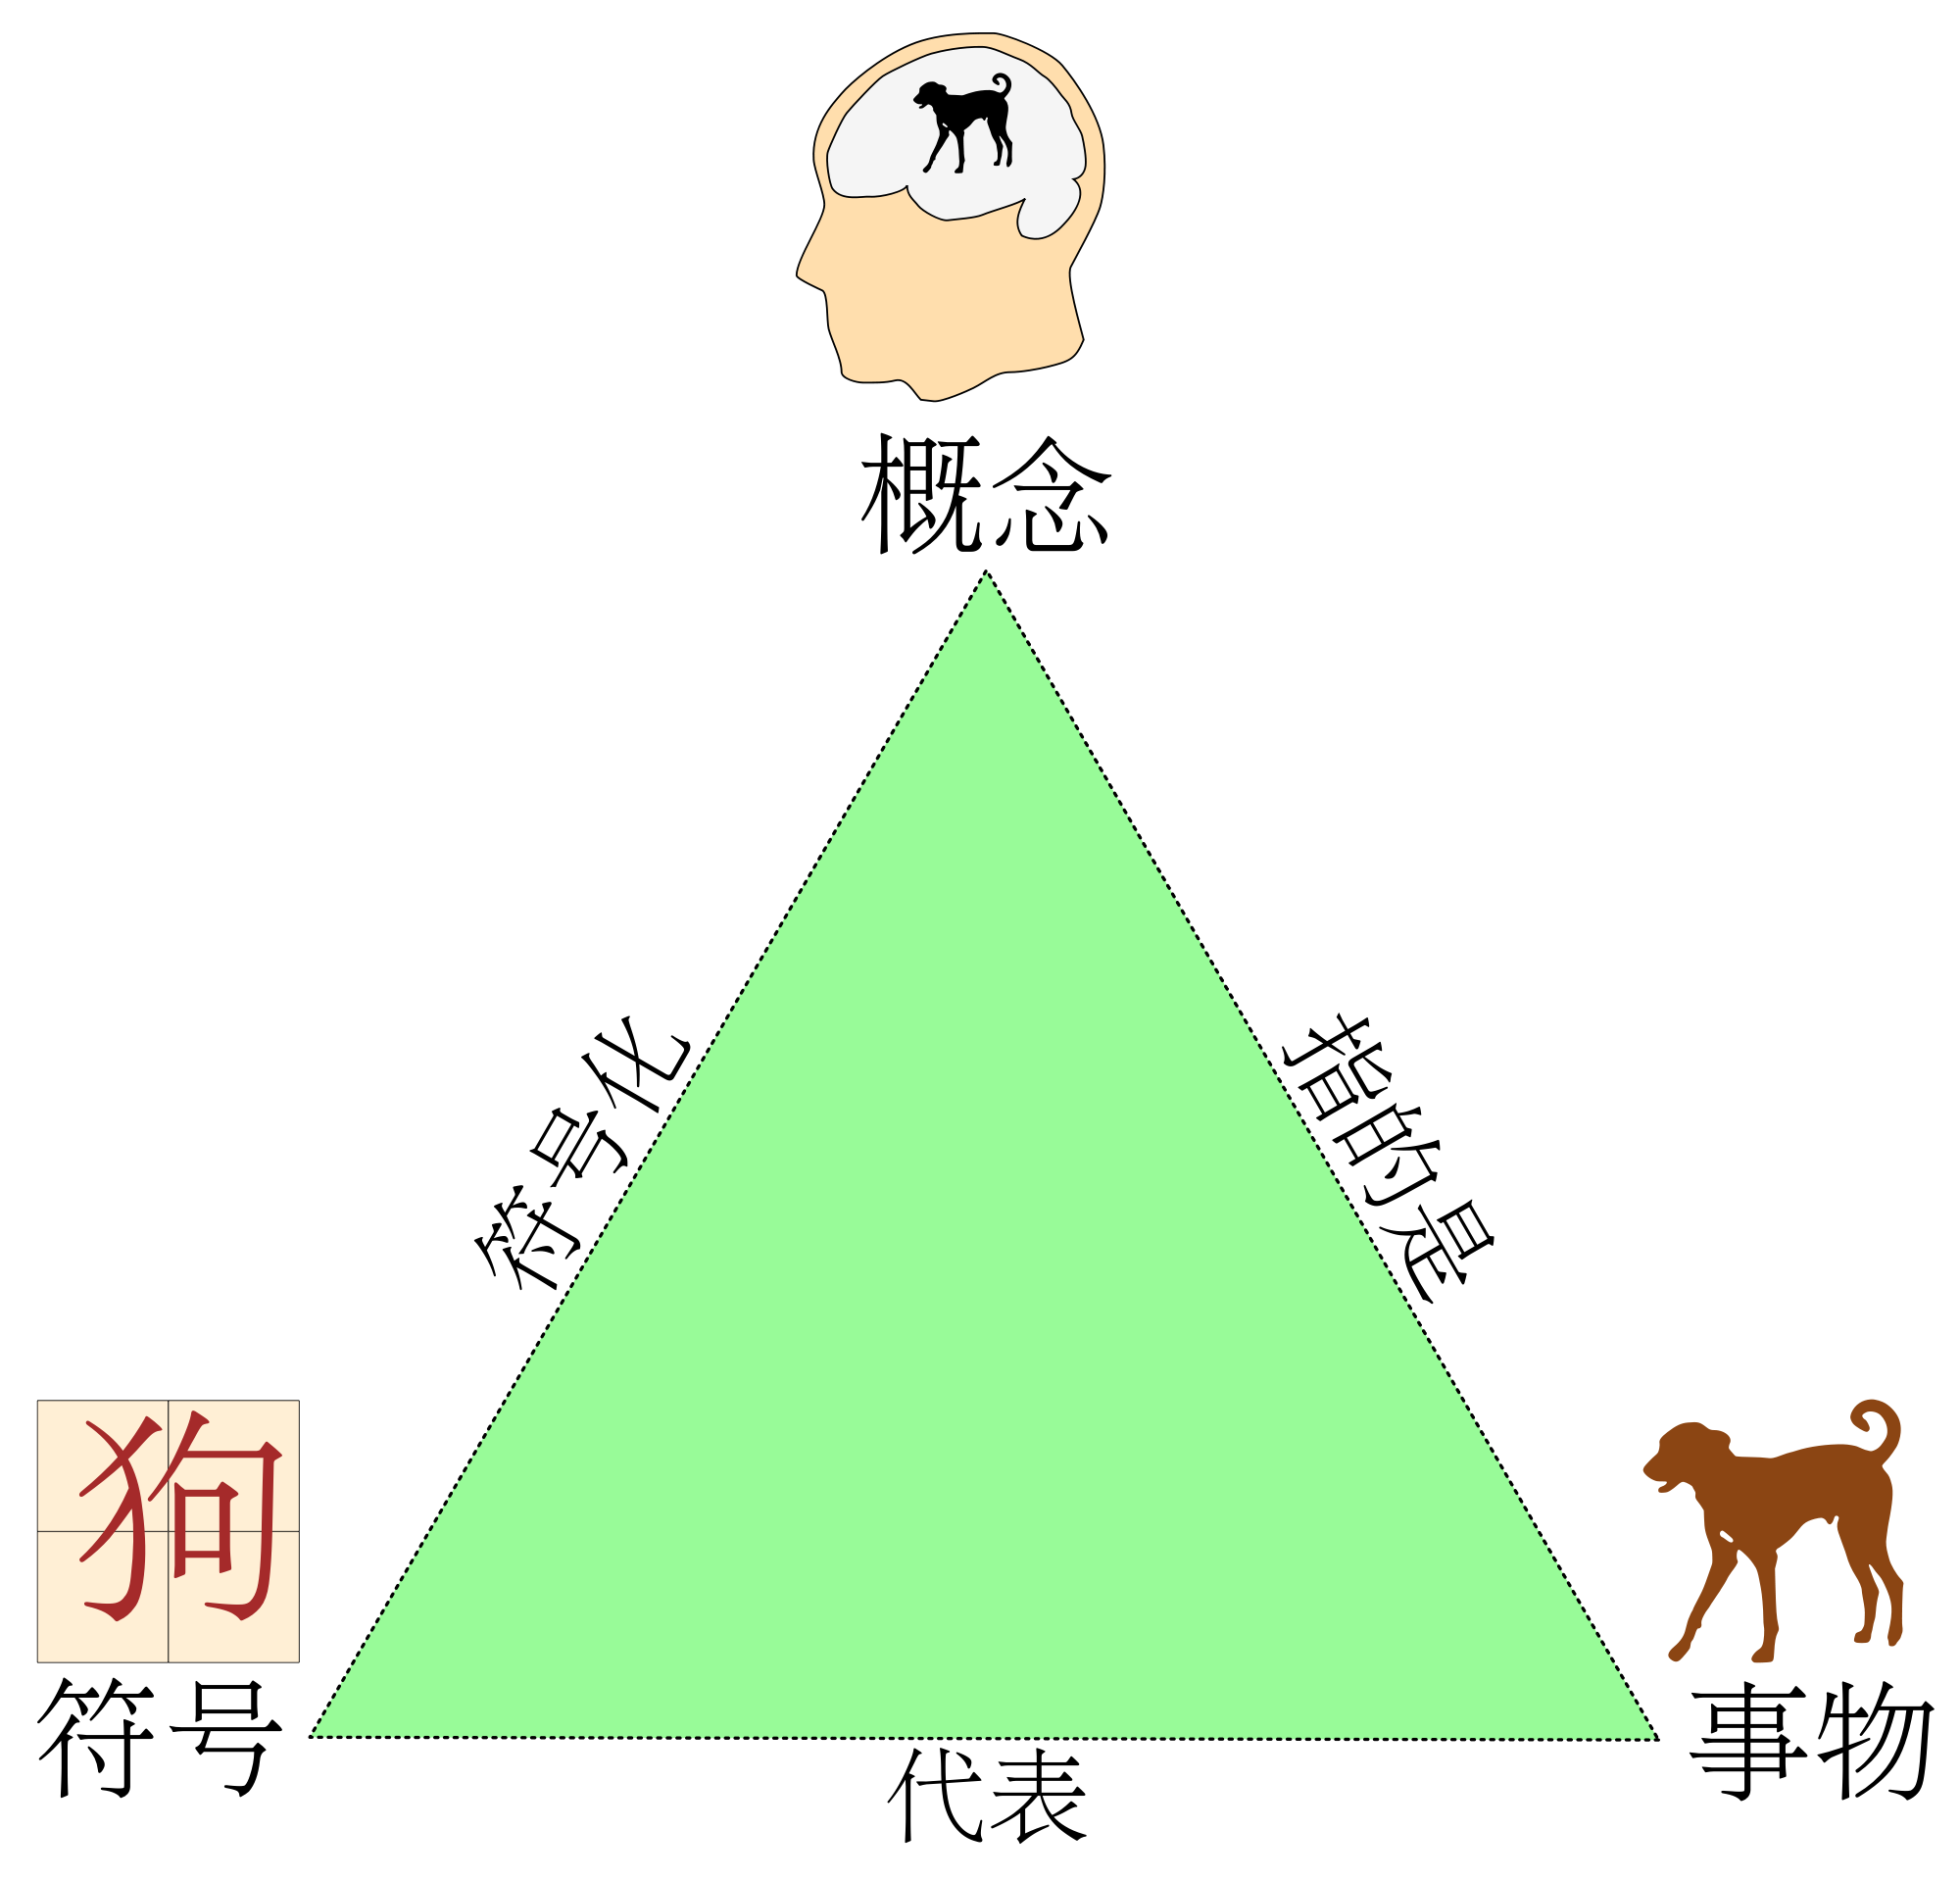 Dogs vector triangle. File semiotic dog svg